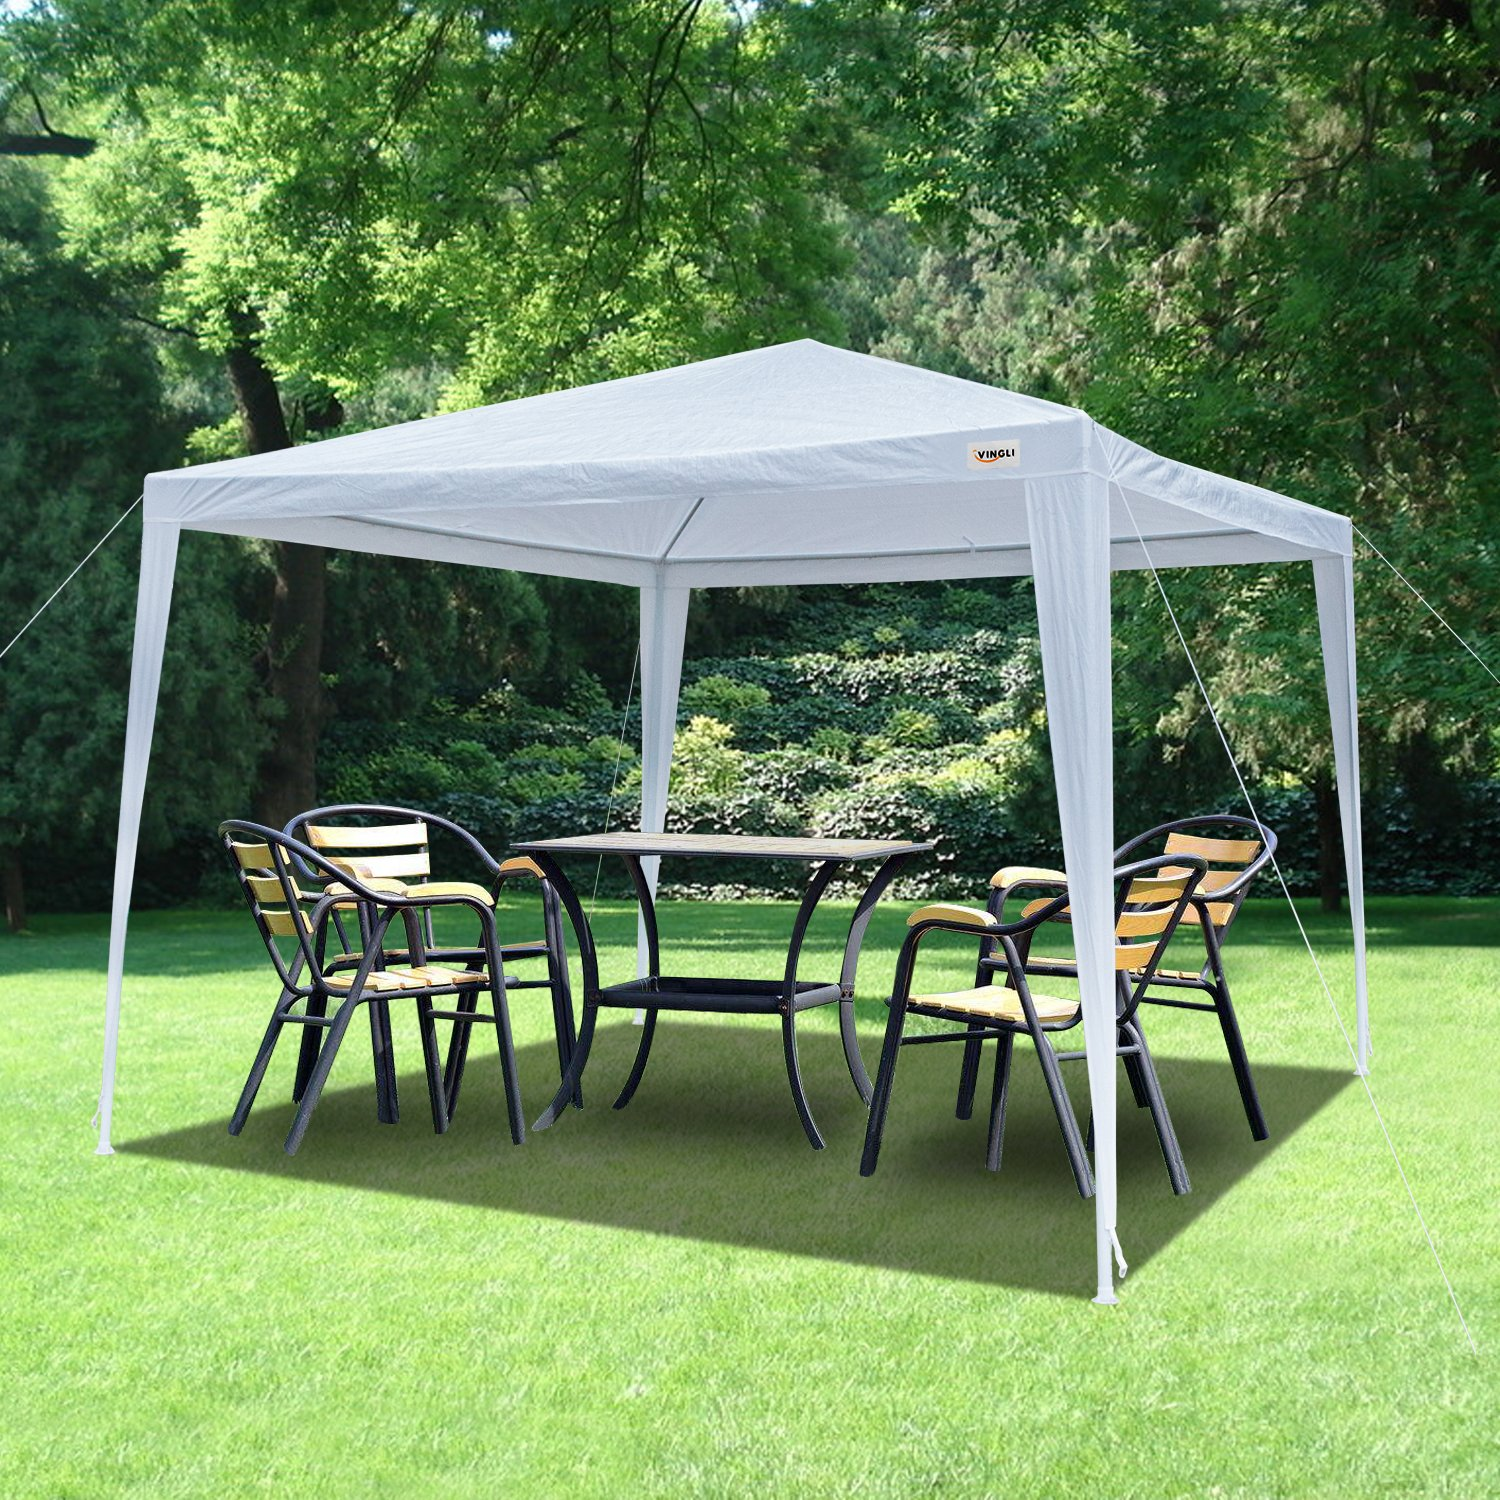 Crazyworld 10' x 10' Outdoor Canopy Wedding Party Tent, Heavy Duty Upgraded Tube Steel Gazebo Pavilion Garden Pool Cater Event Tent